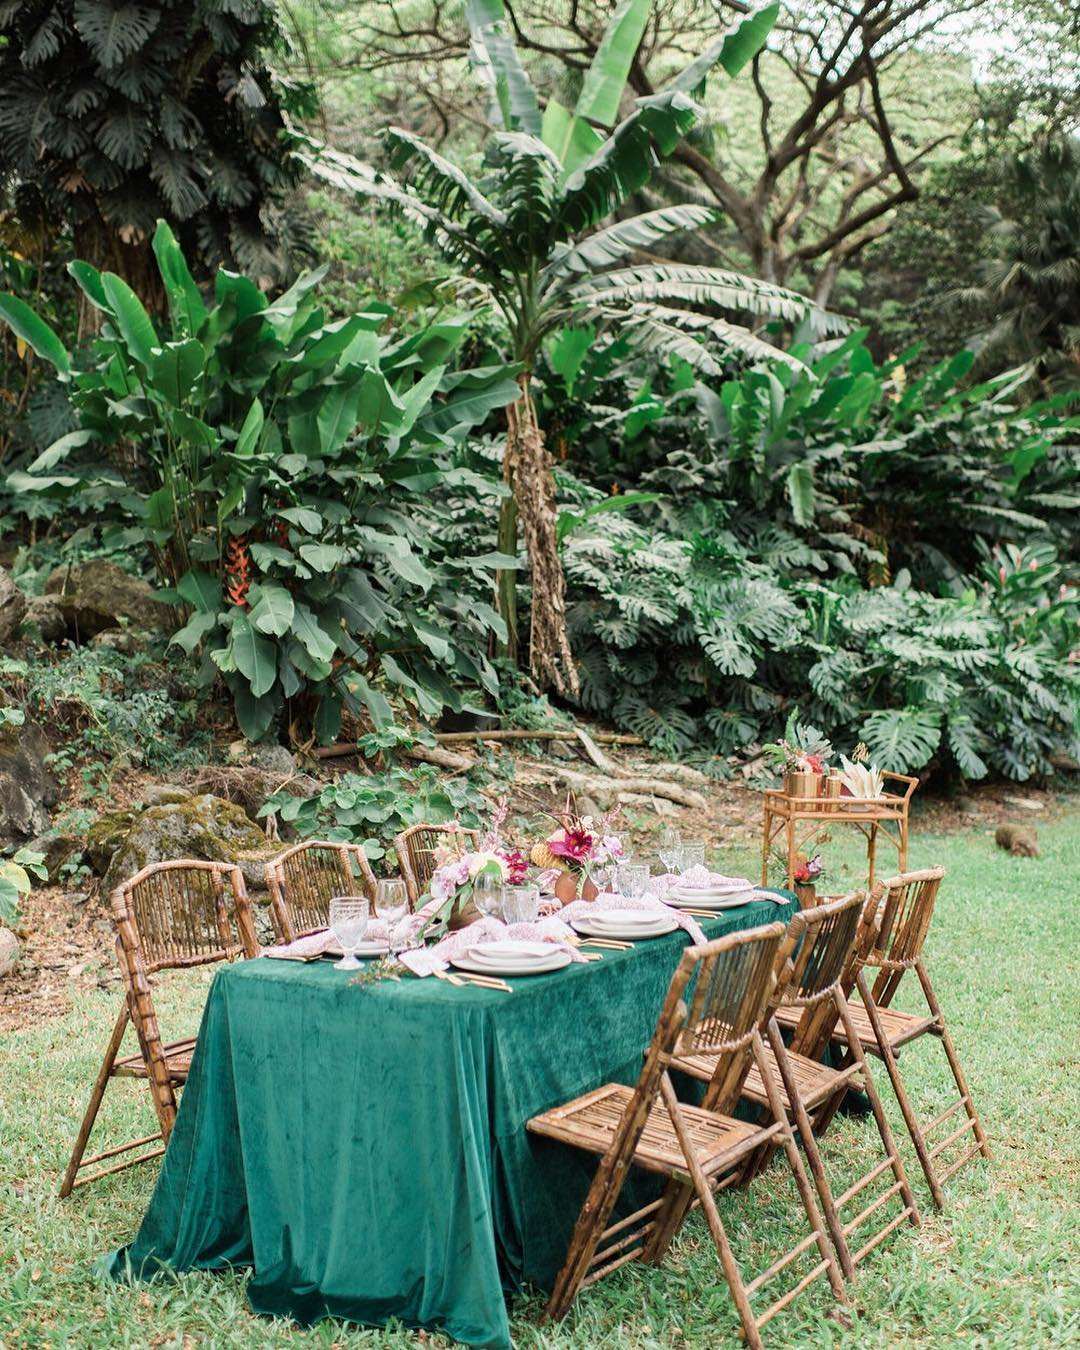 Fresh, Vintage-Inspired Island Style - It's hard to plan a wedding from hundreds or thousands of miles away. Even harder when you're dreaming of lush botanicals, vintage rattan furniture, hand-crafted details and bright pops of colour. That's where the brilliant creatives behind Roam Rentals step in to save the day. Their love for all things vintage, bohemian, and modern shine in the fresh, gorgeous weddings they plan all across Hawaii.Visit WebsiteOahu, HawaiiPhone: 1 808 367 5988Email: hello@roamrentalshawaii.com